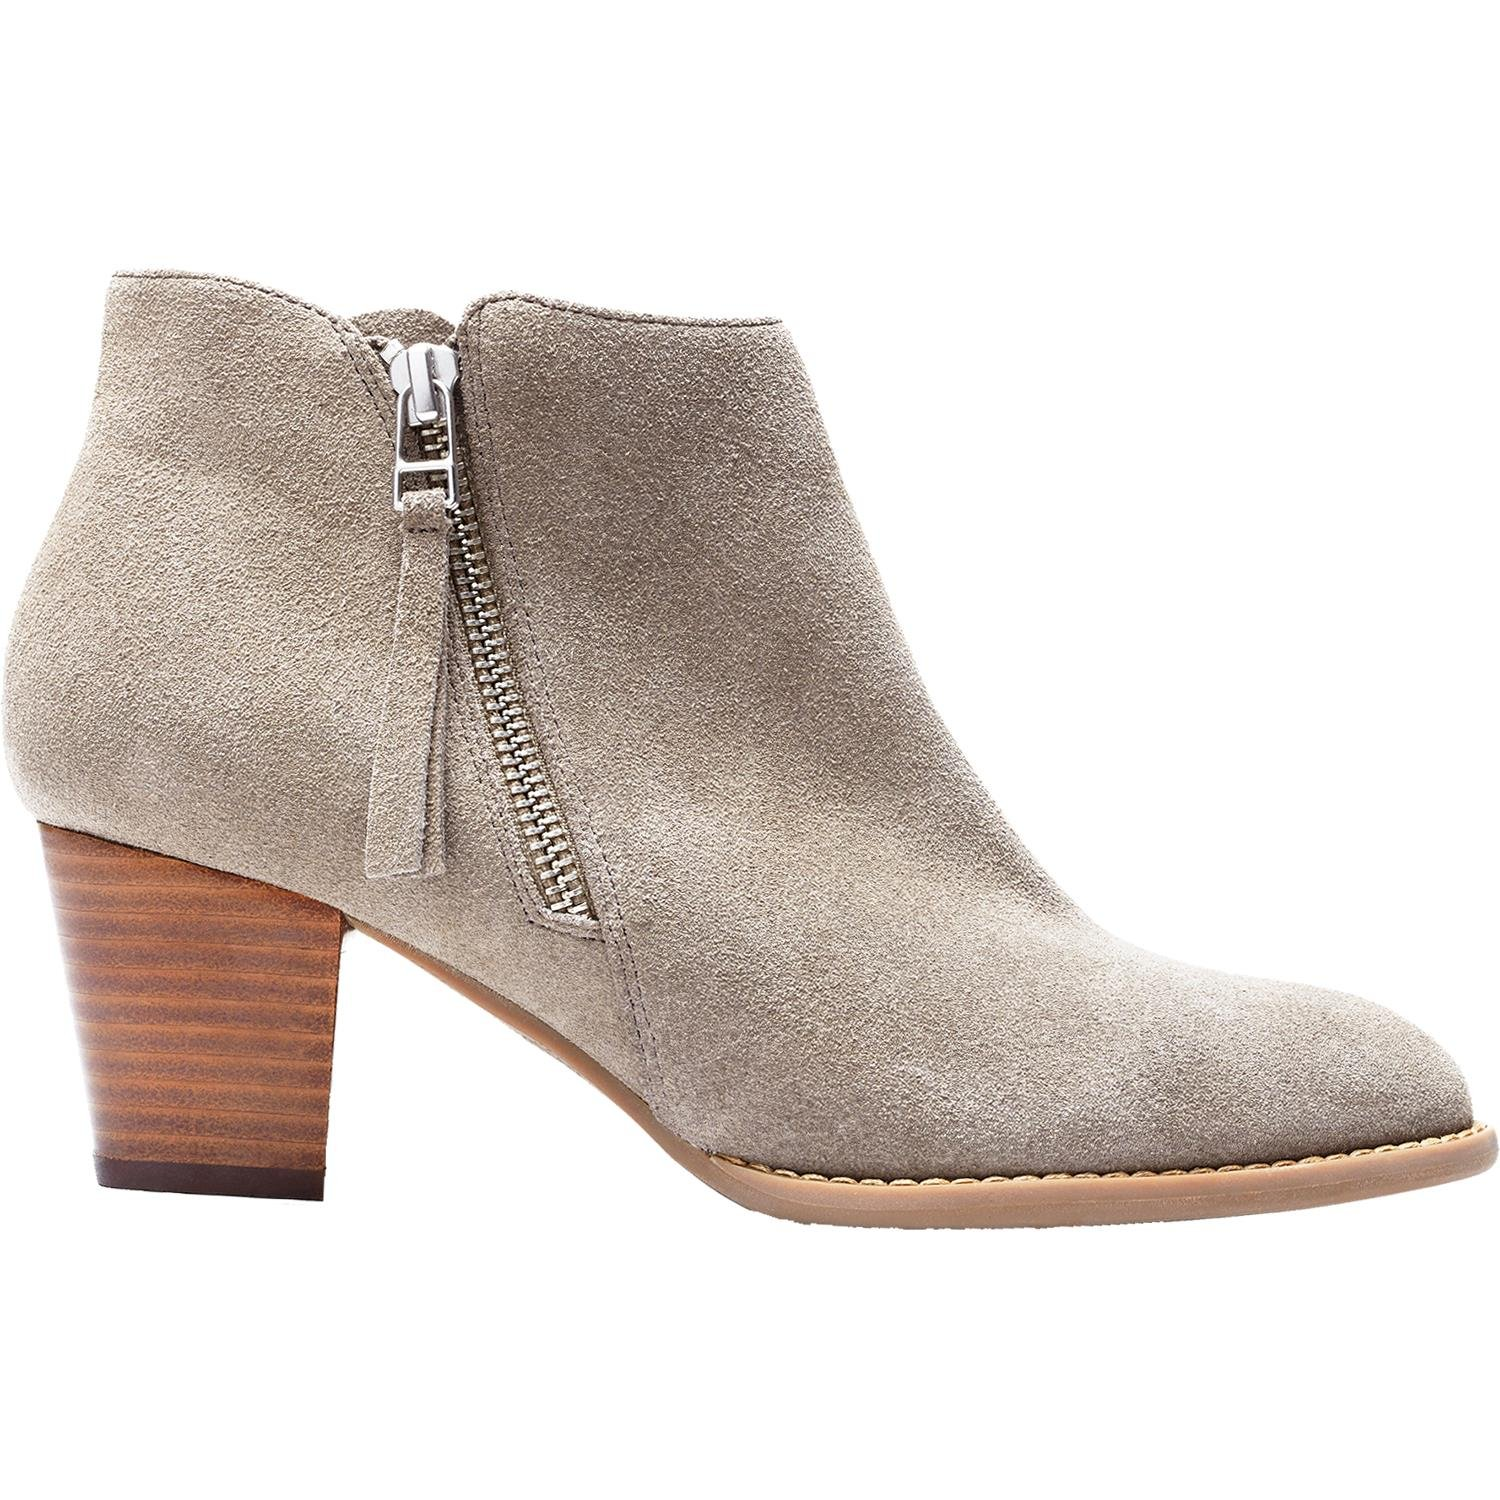 VIONIC Women's Upright Sterling Ankle Boot Greige Boot